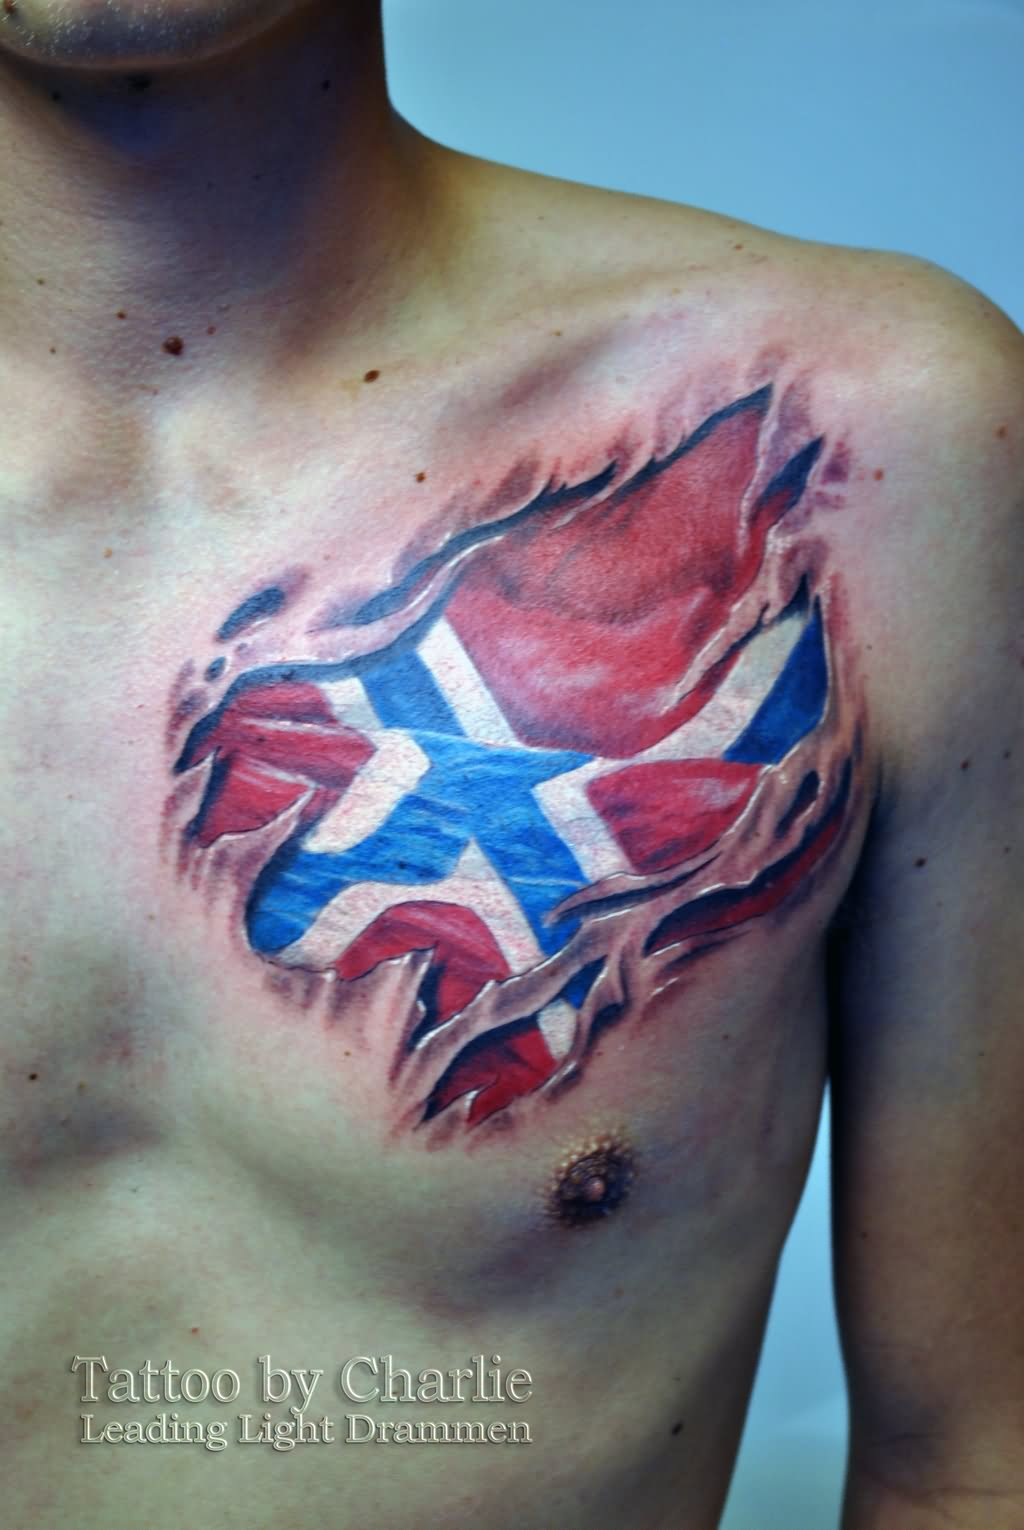 Name canadian flag ripping through skin tattoo designjpg pictures - Ripped Skin Canada Flag Tattoo Design Ripped Skin Norsk Flag Tattoo On Man Left Front Shoulder